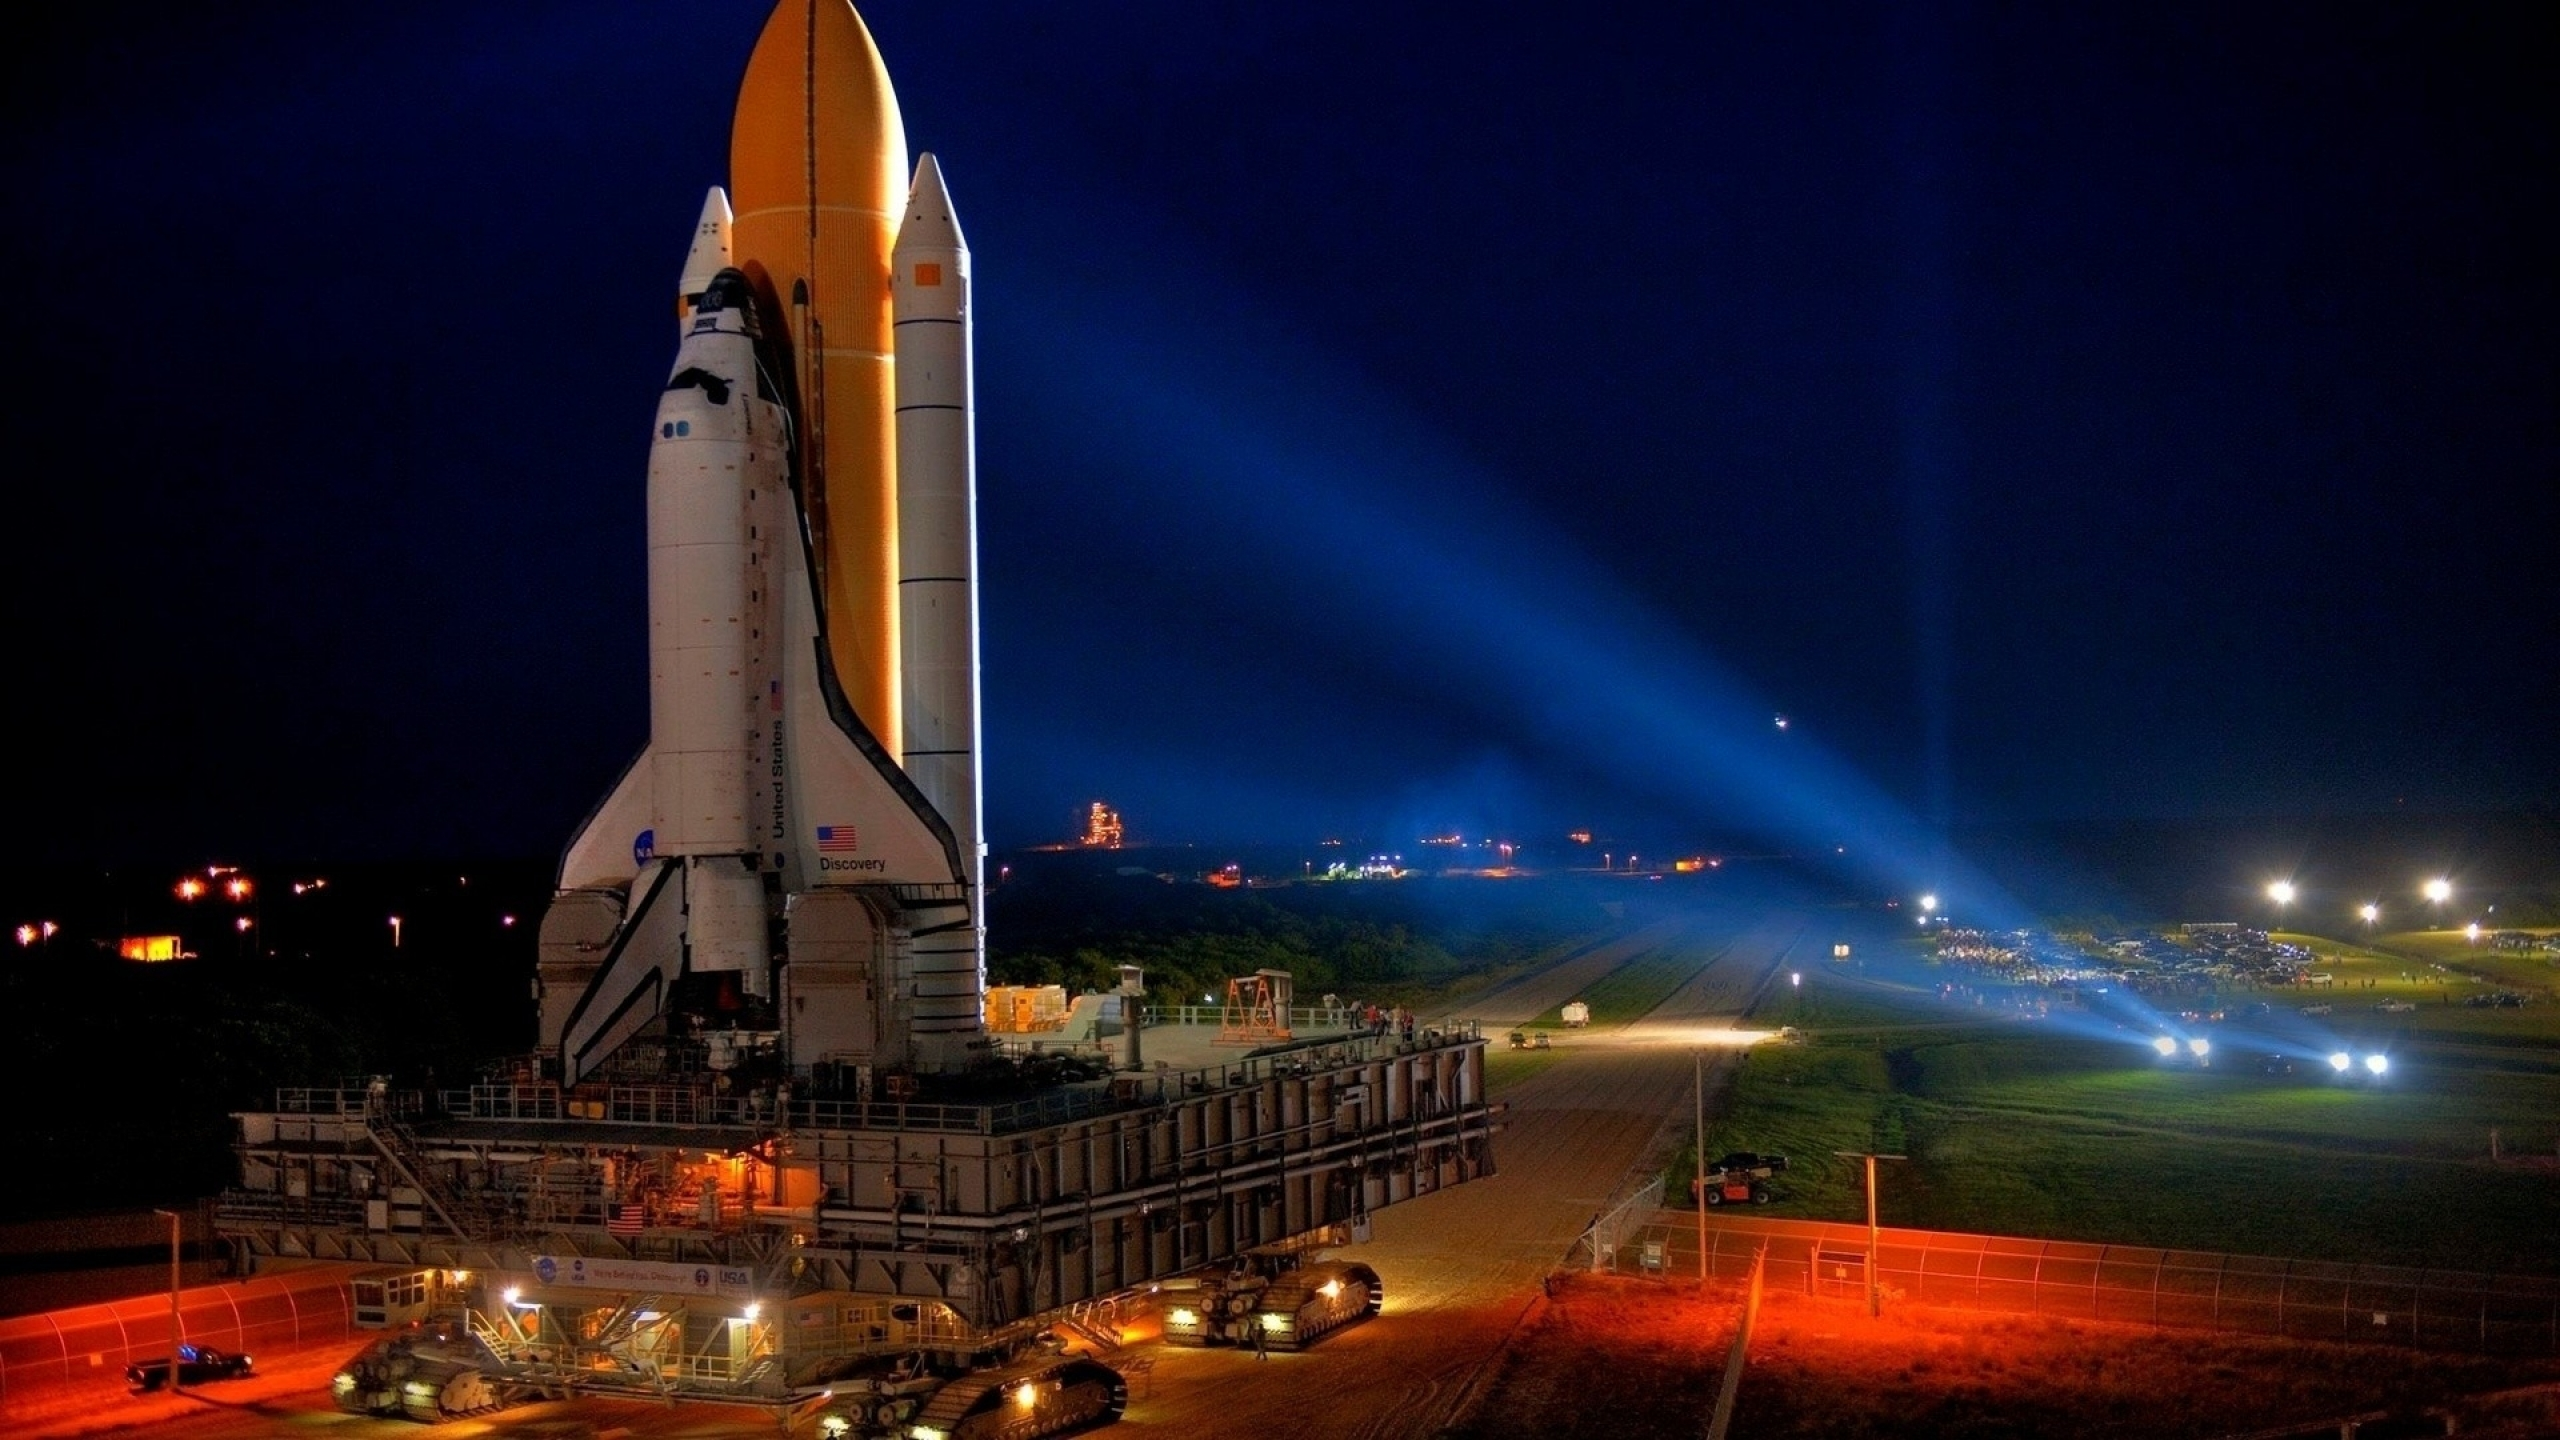 2560x1440 space shuttle nasa launch pad space shuttle discovery 2560x1440